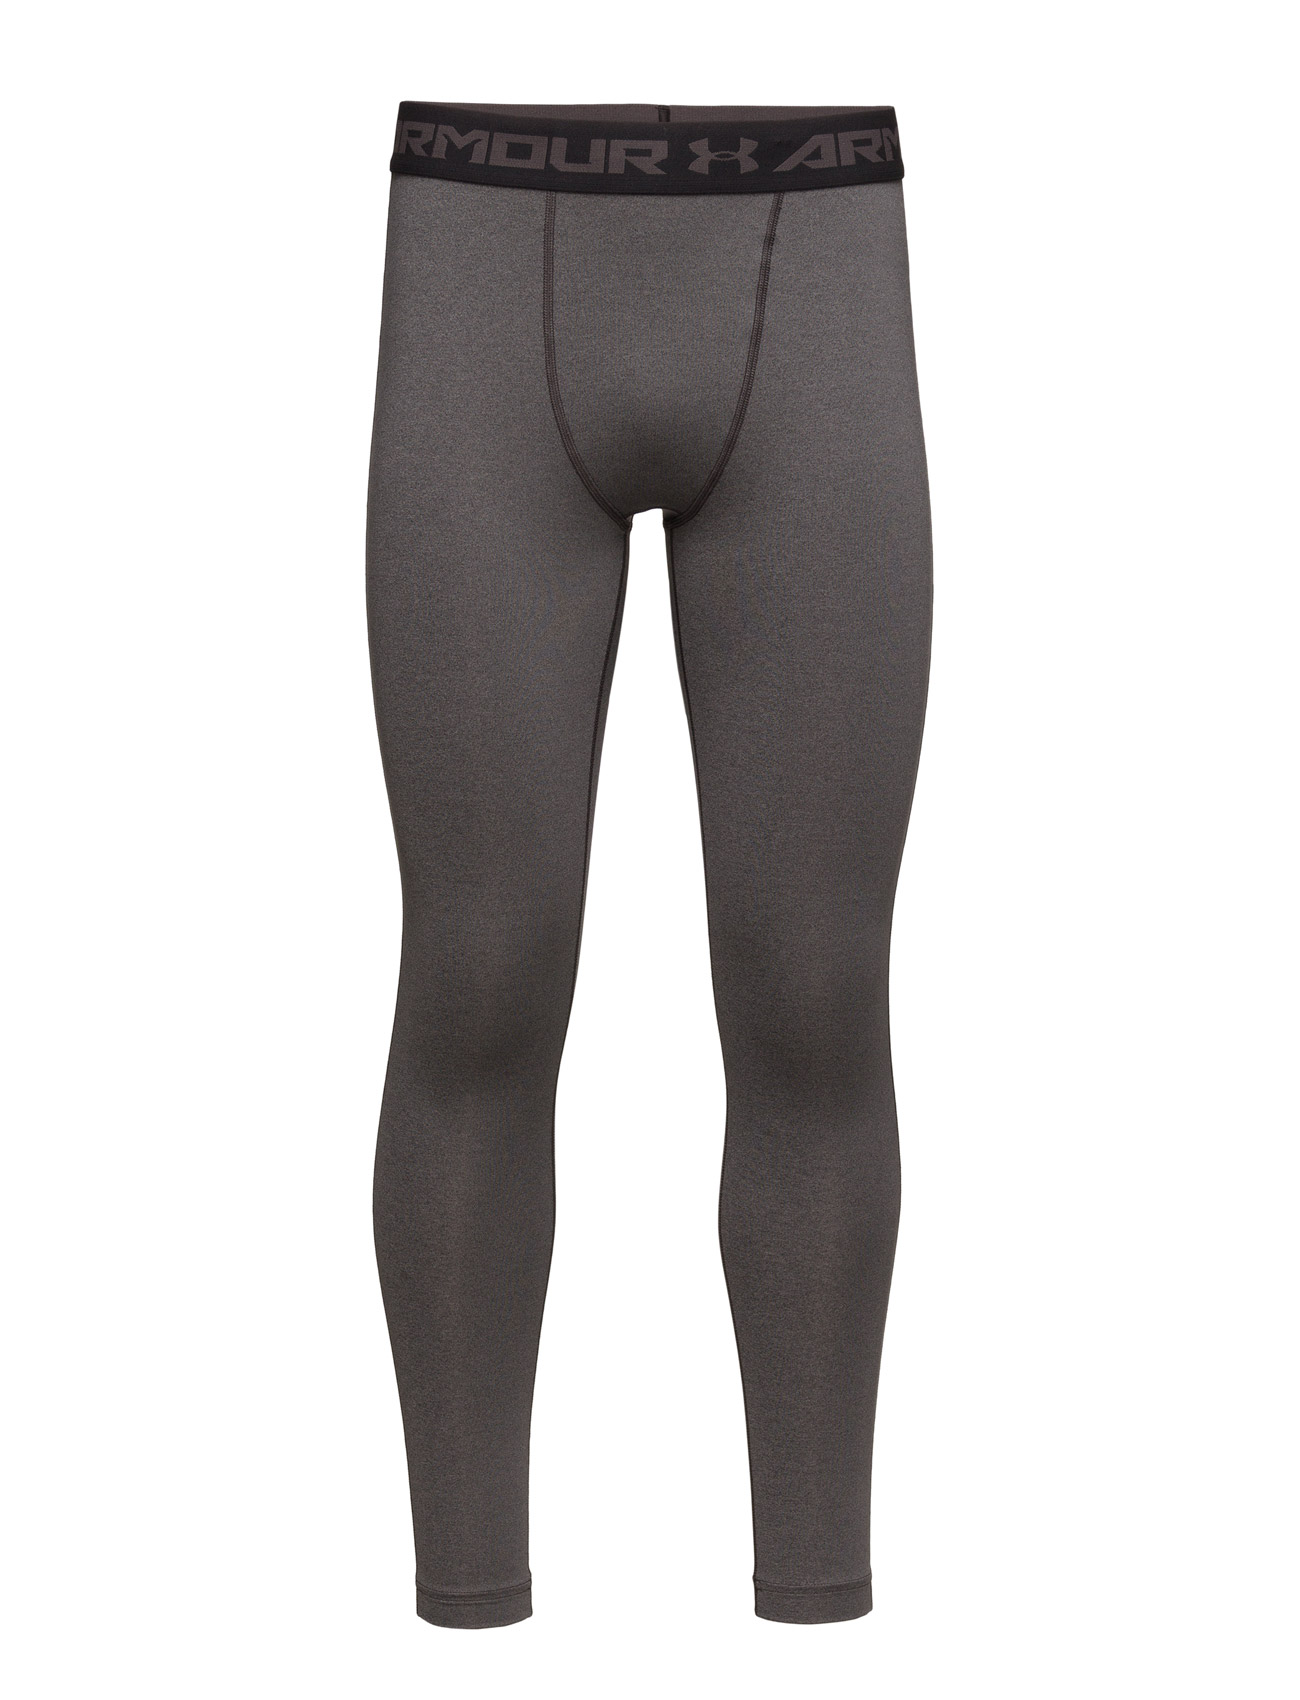 Armour Hg Comp Legging Under Armour Sportstøj til Mænd i Sort